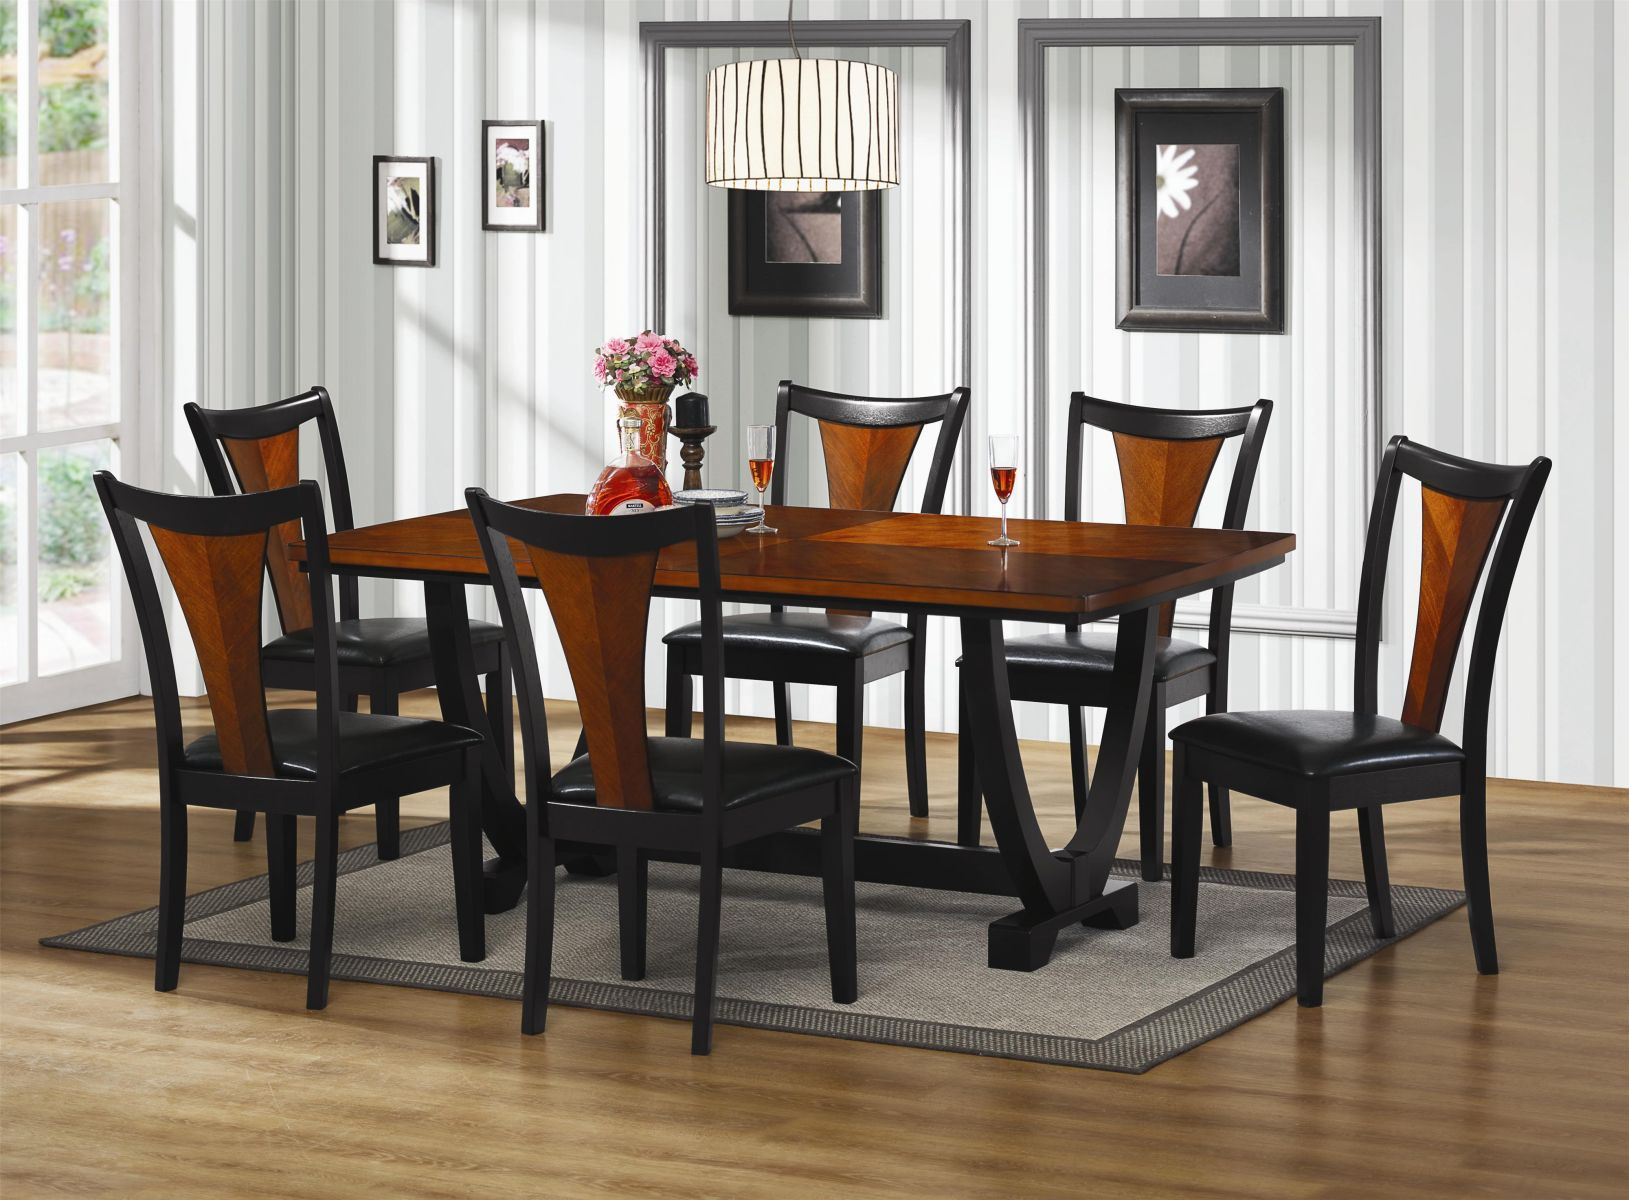 Delicieux Unique Dinette Long Island New York   Coaster Dining Room Set Long Island  New York Dinette Sets New York , Dinette Sets Long Island , Dining Room Sets  New ...